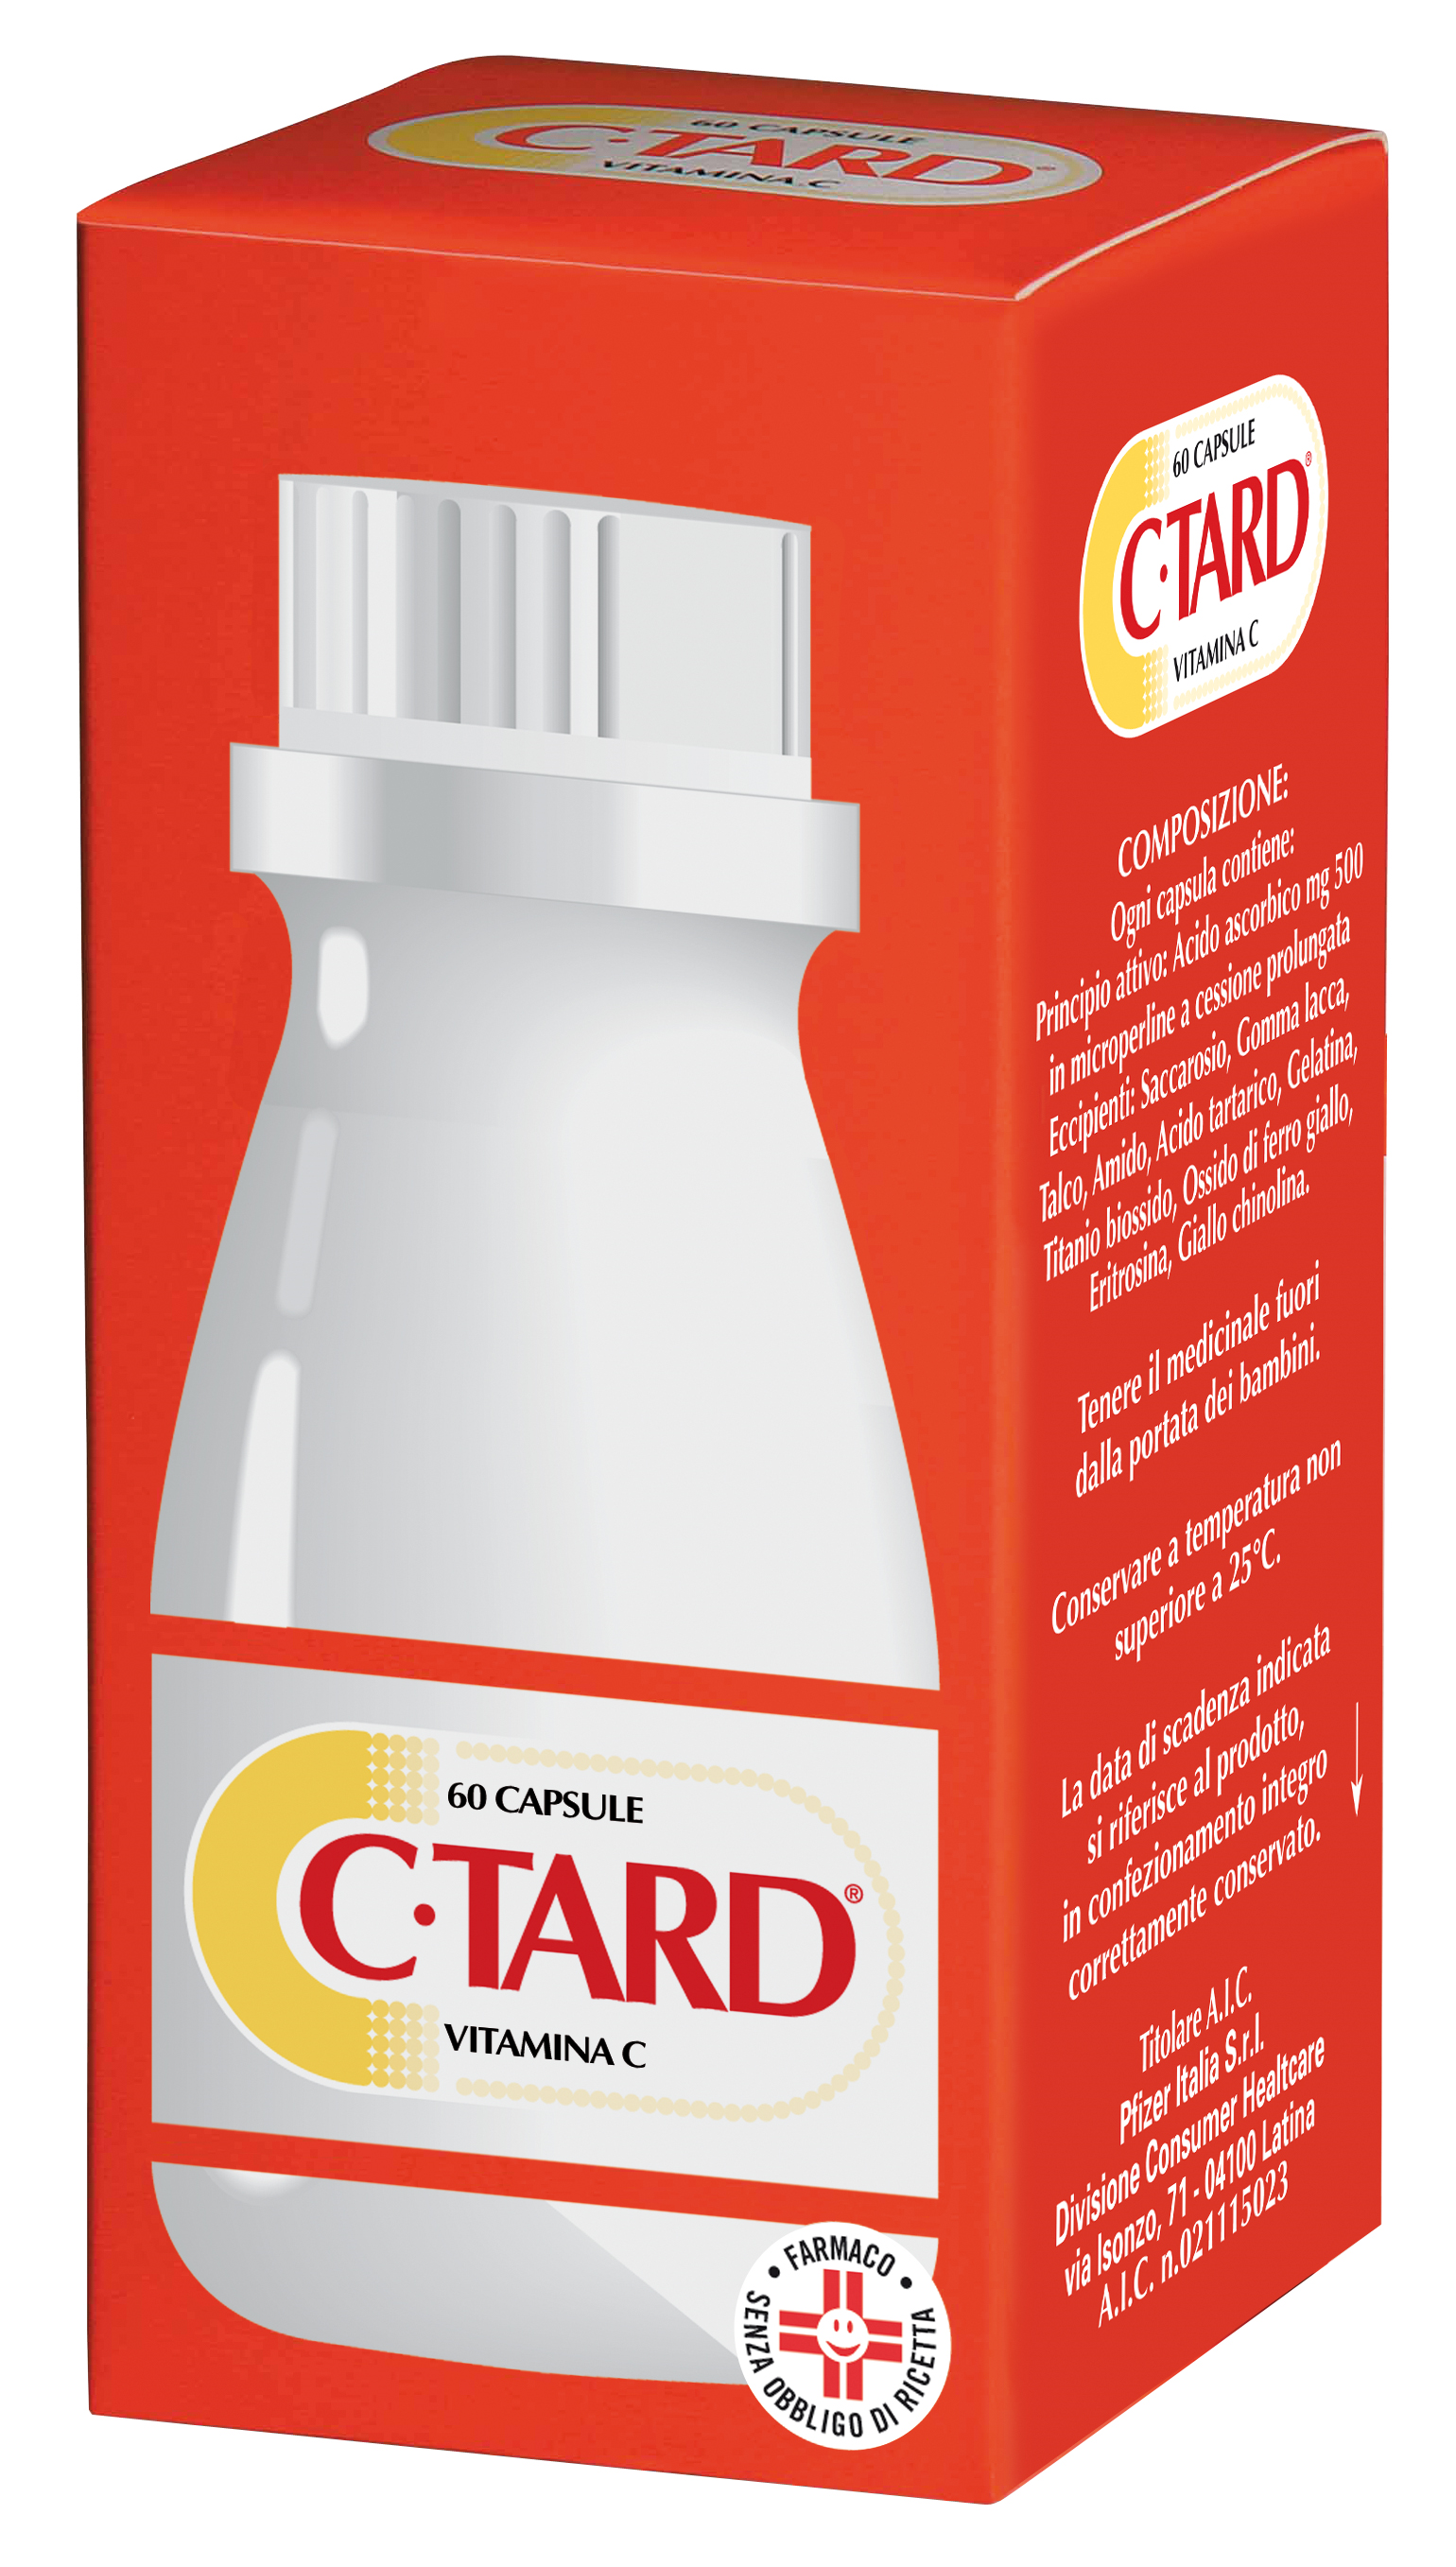 CTARD*60CPS 500MG RP FL - Spacefarma.it